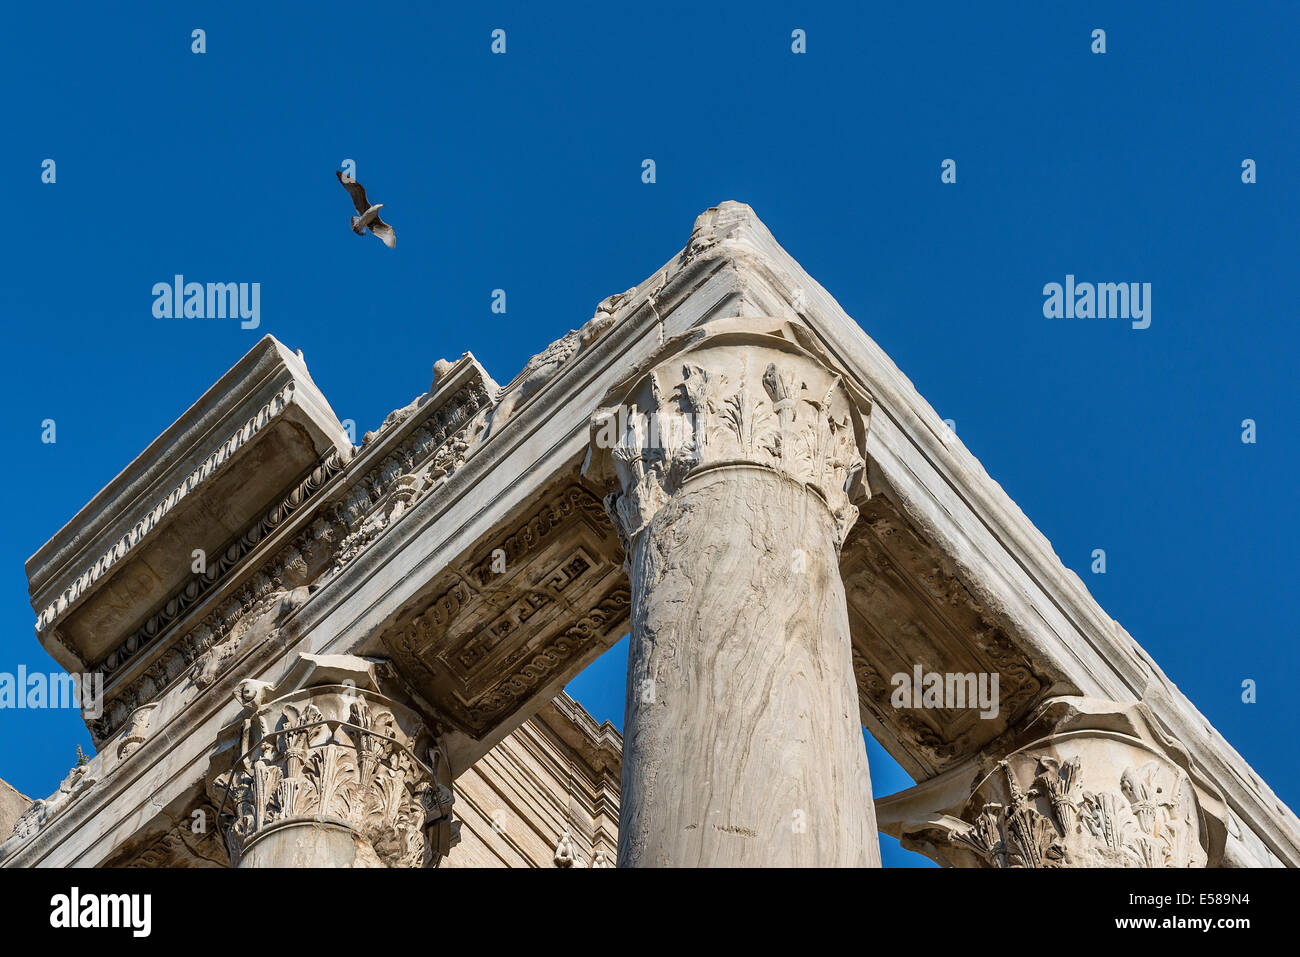 Corinthian column detail, Temple of Antoninus & Faustina, Roman Forum, Rome, Italy - Stock Image